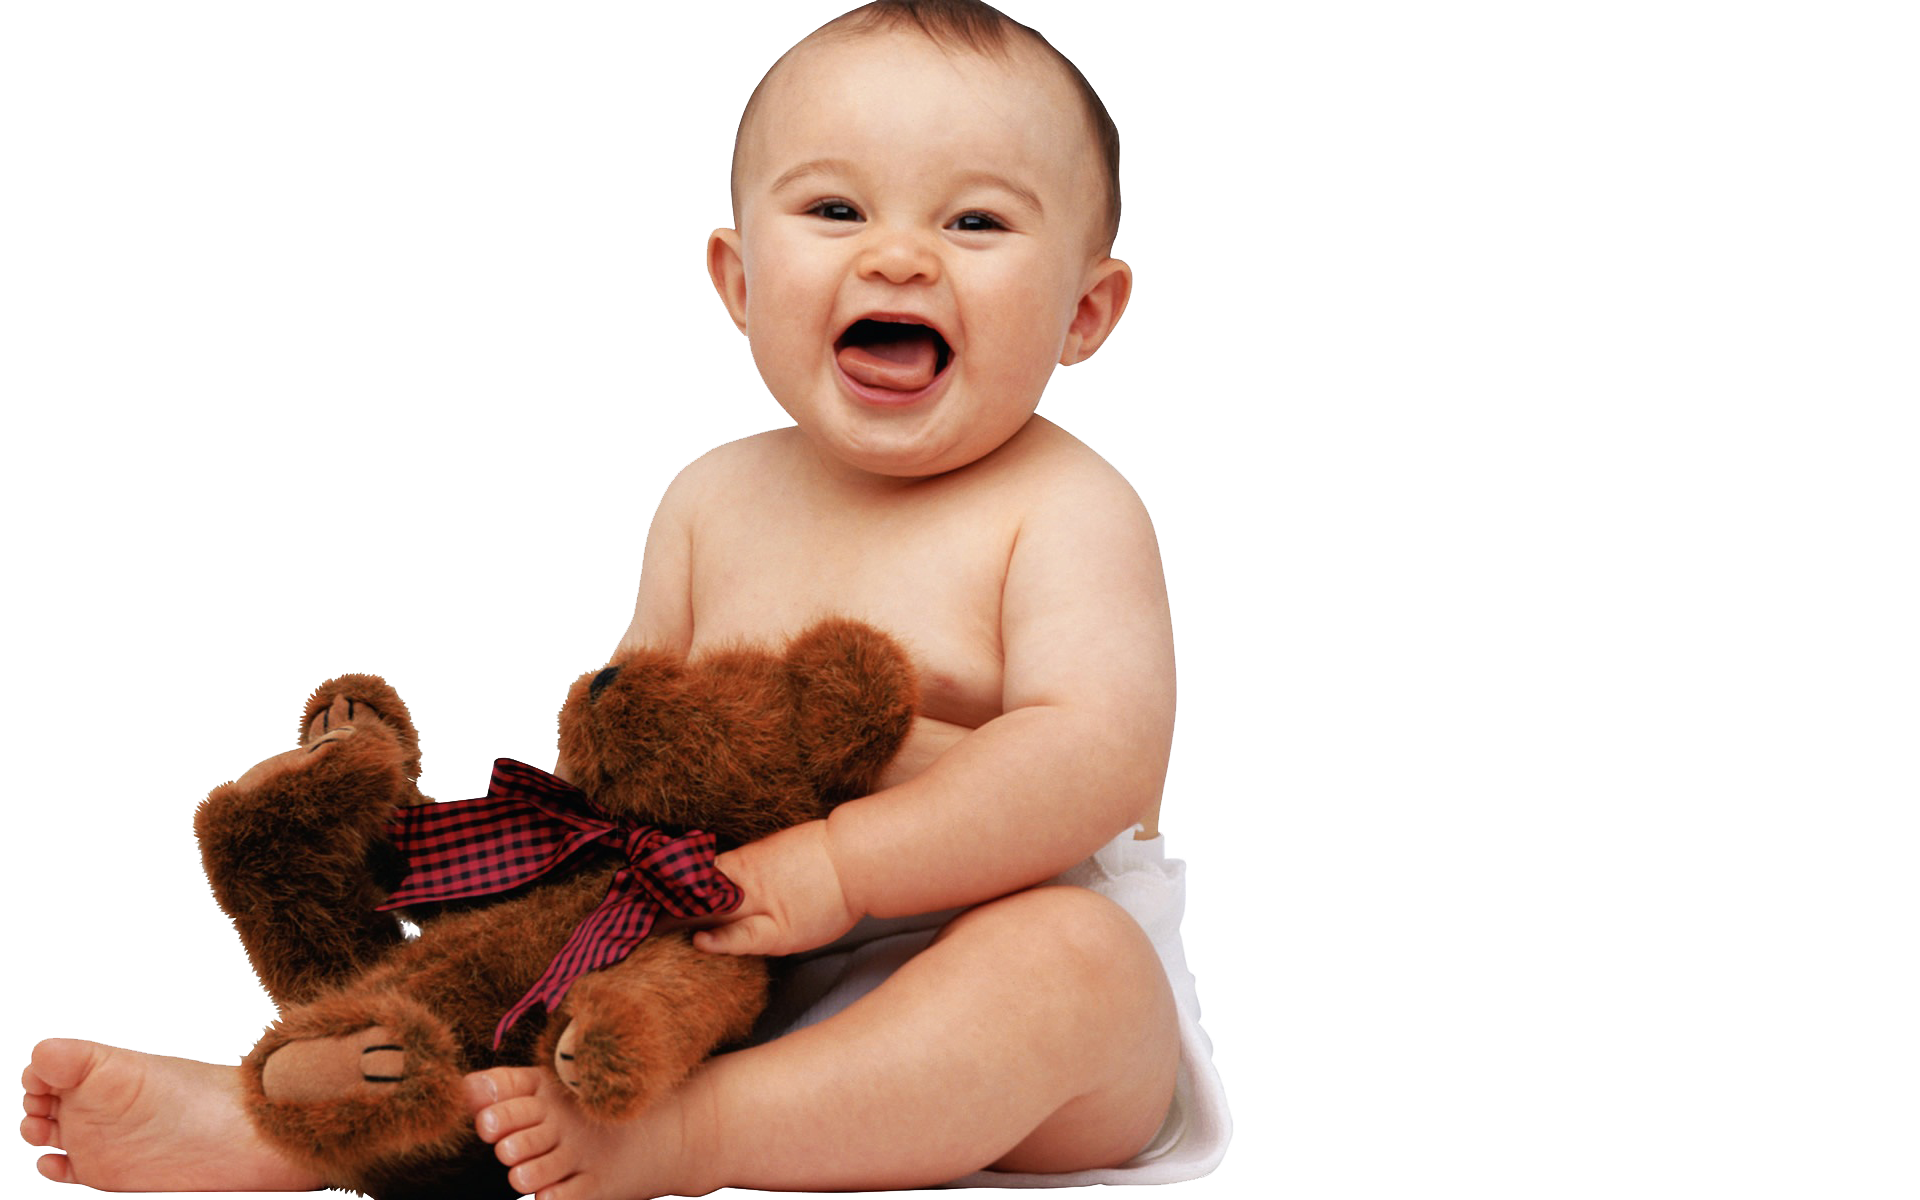 baby hd png transparent baby hd images. | pluspng